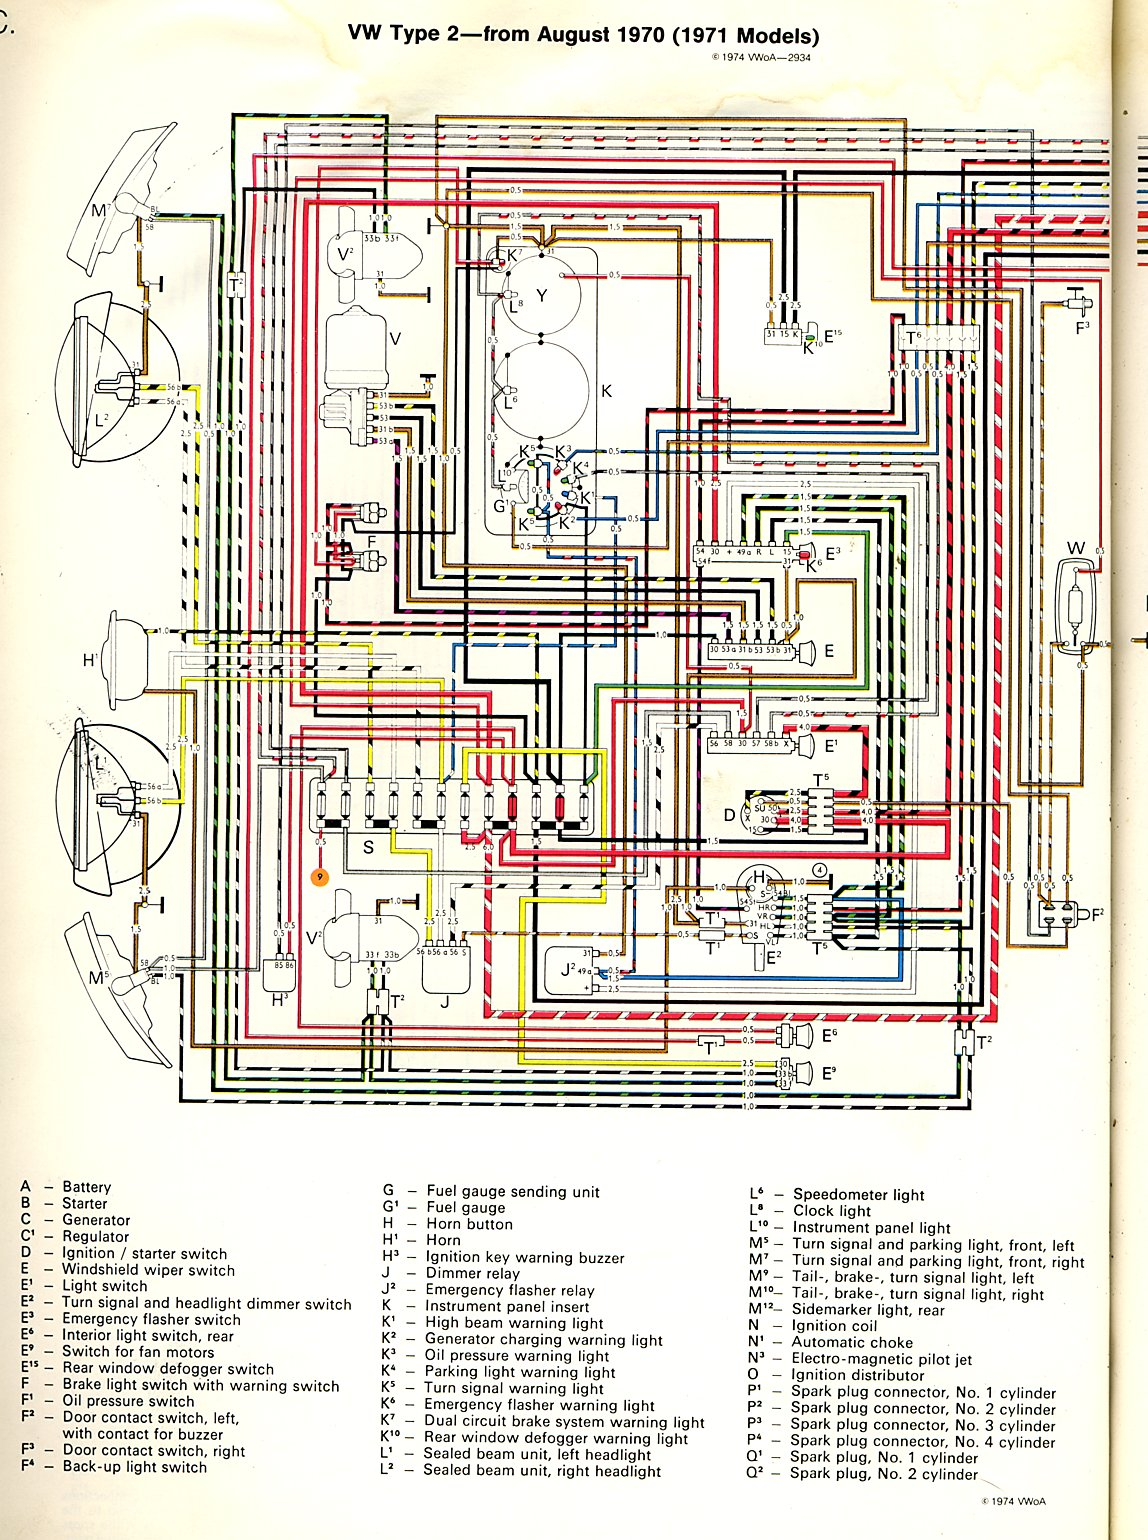 Vw Bus Wiring Connector Diy Enthusiasts Diagrams Vintage Harness 1971 Diagram Thegoldenbug Com Rh